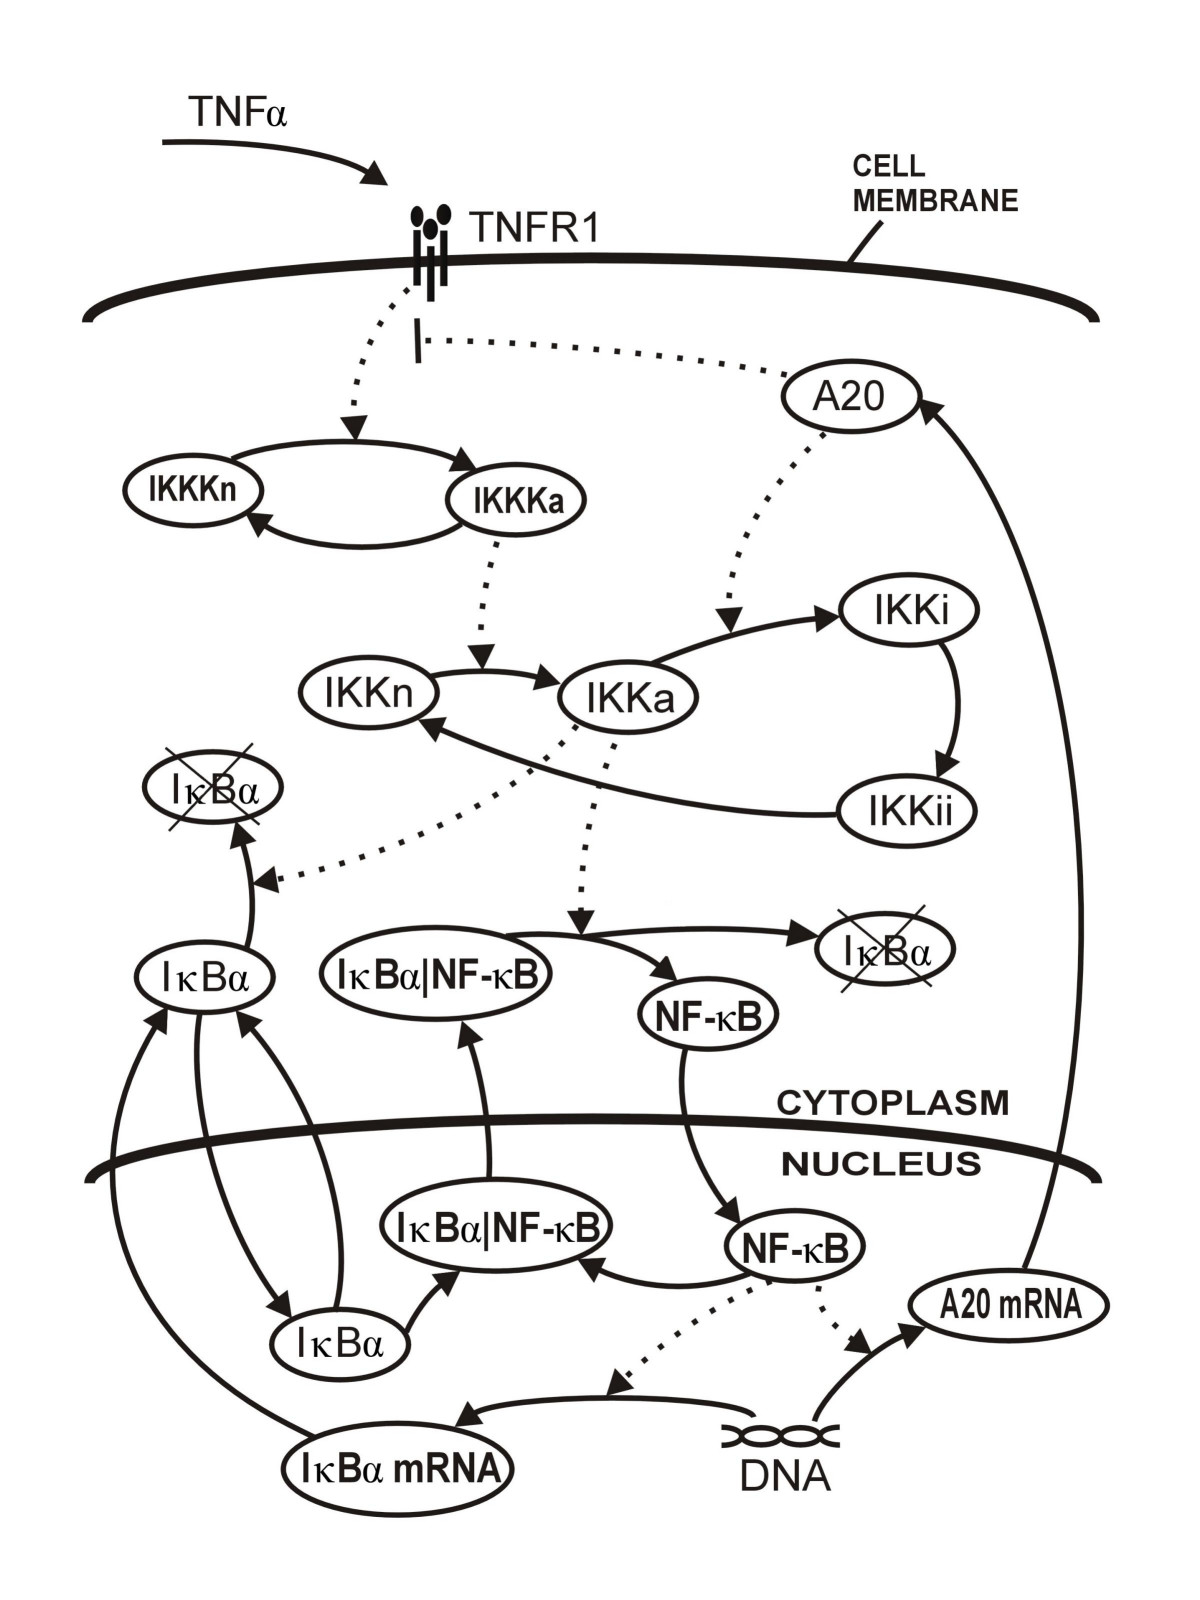 http://static-content.springer.com/image/art%3A10.1186%2F1471-2105-8-376/MediaObjects/12859_2007_Article_1748_Fig1_HTML.jpg